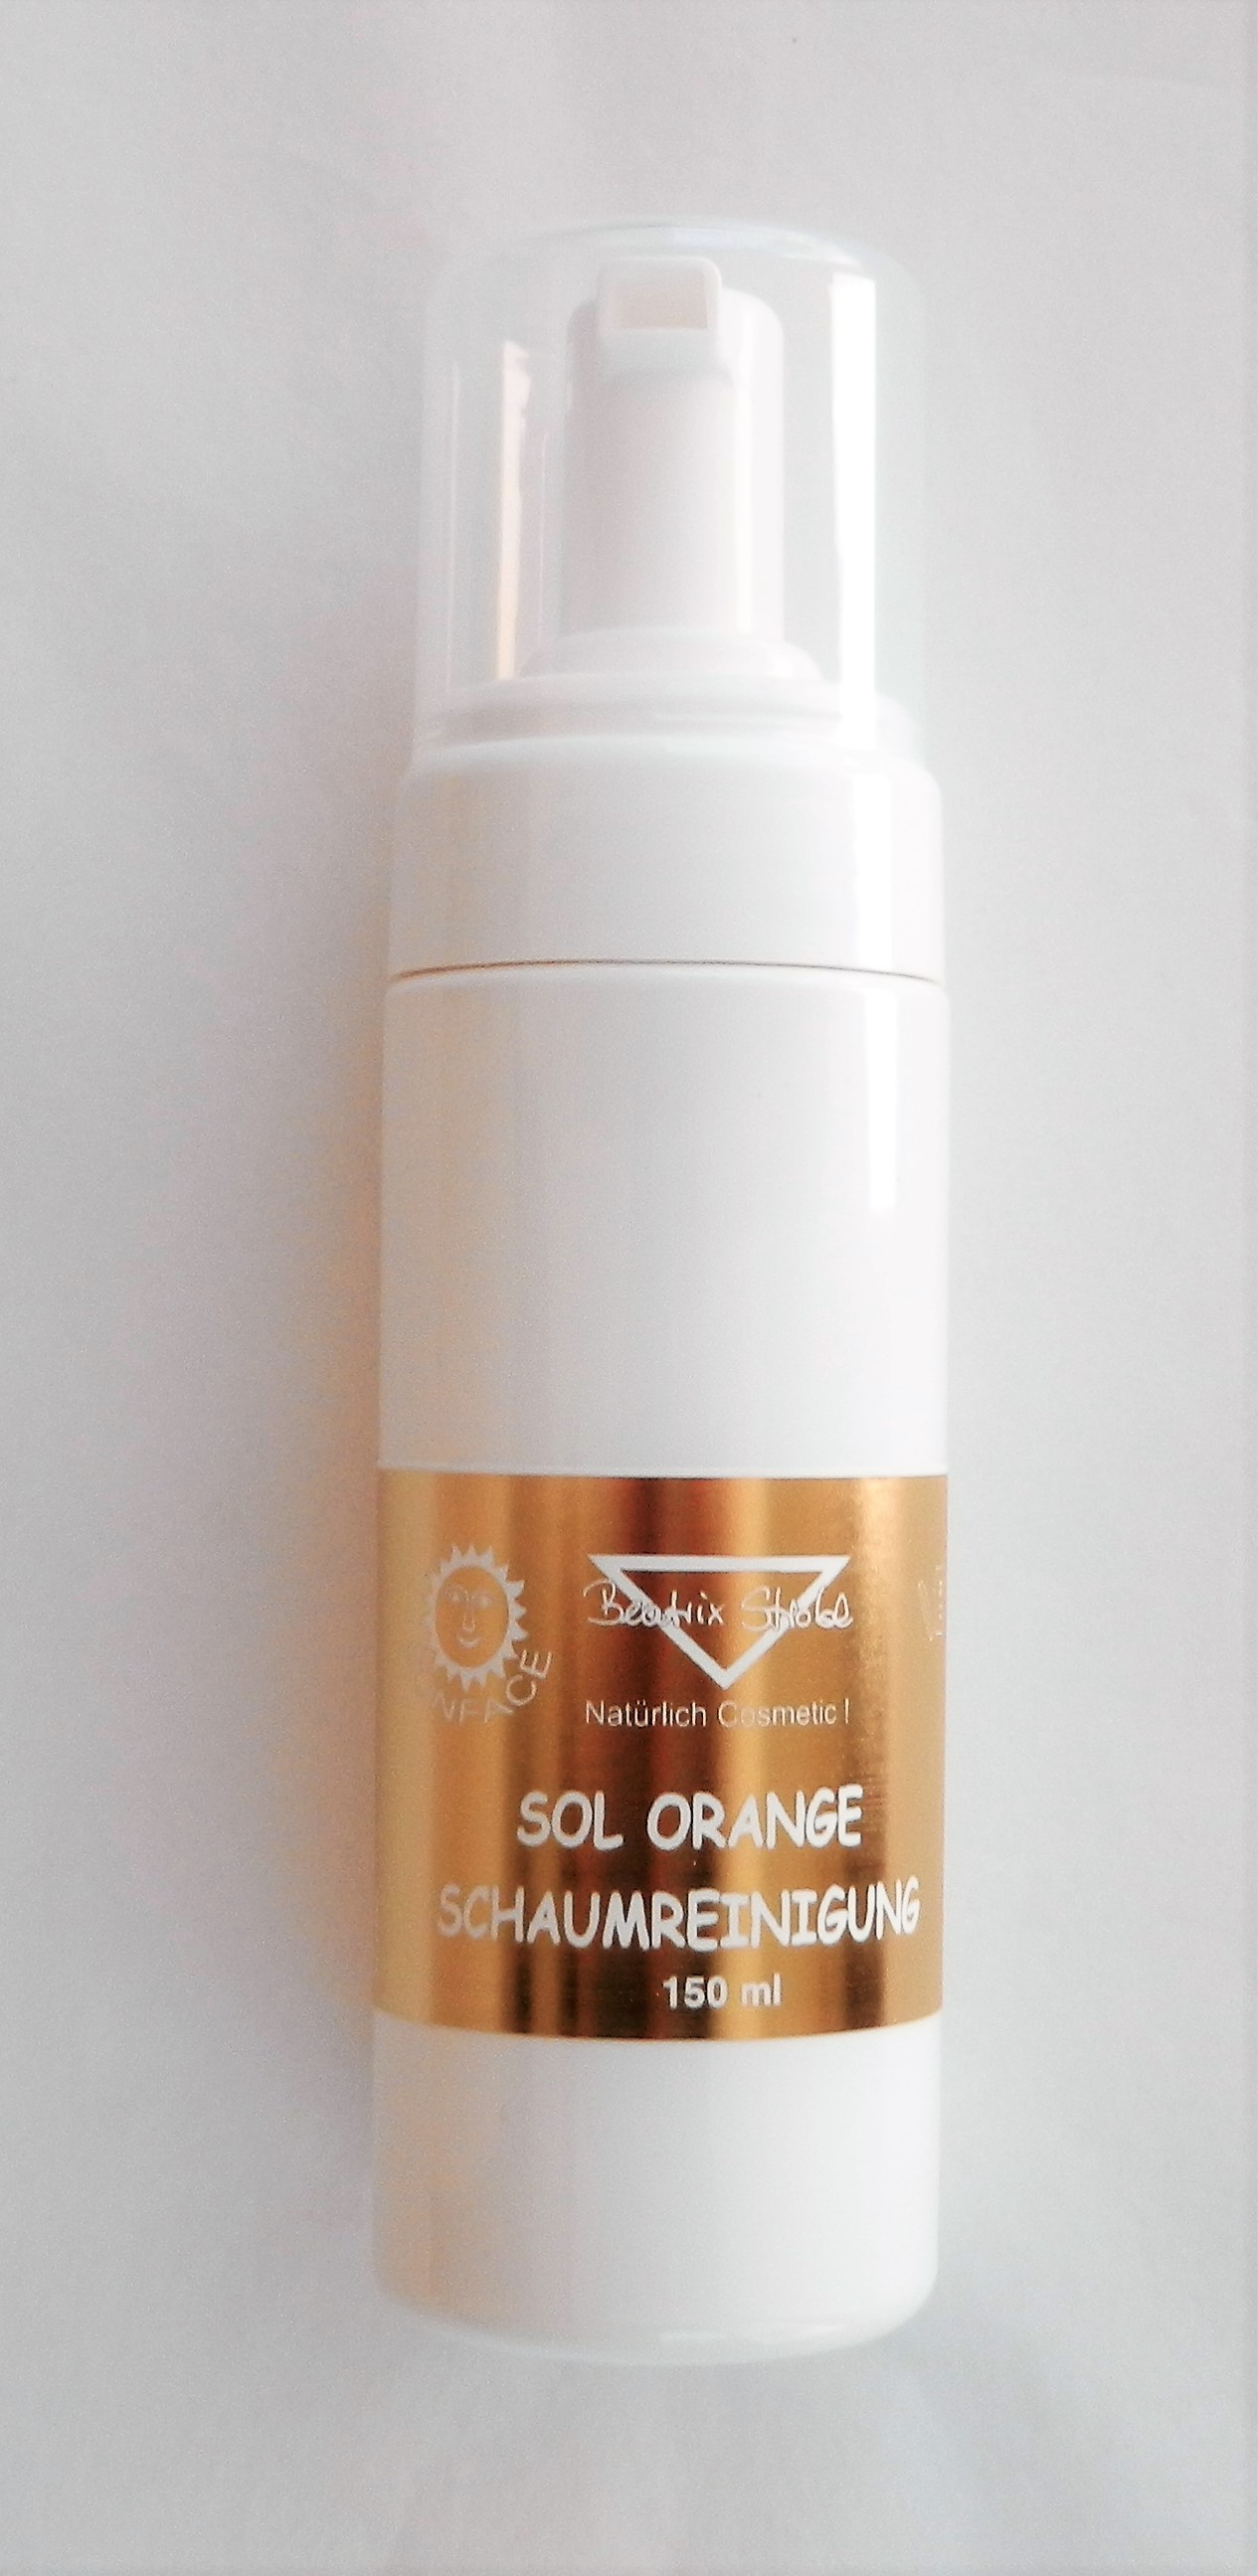 SOL ORANGE SCHAUMREINIGER